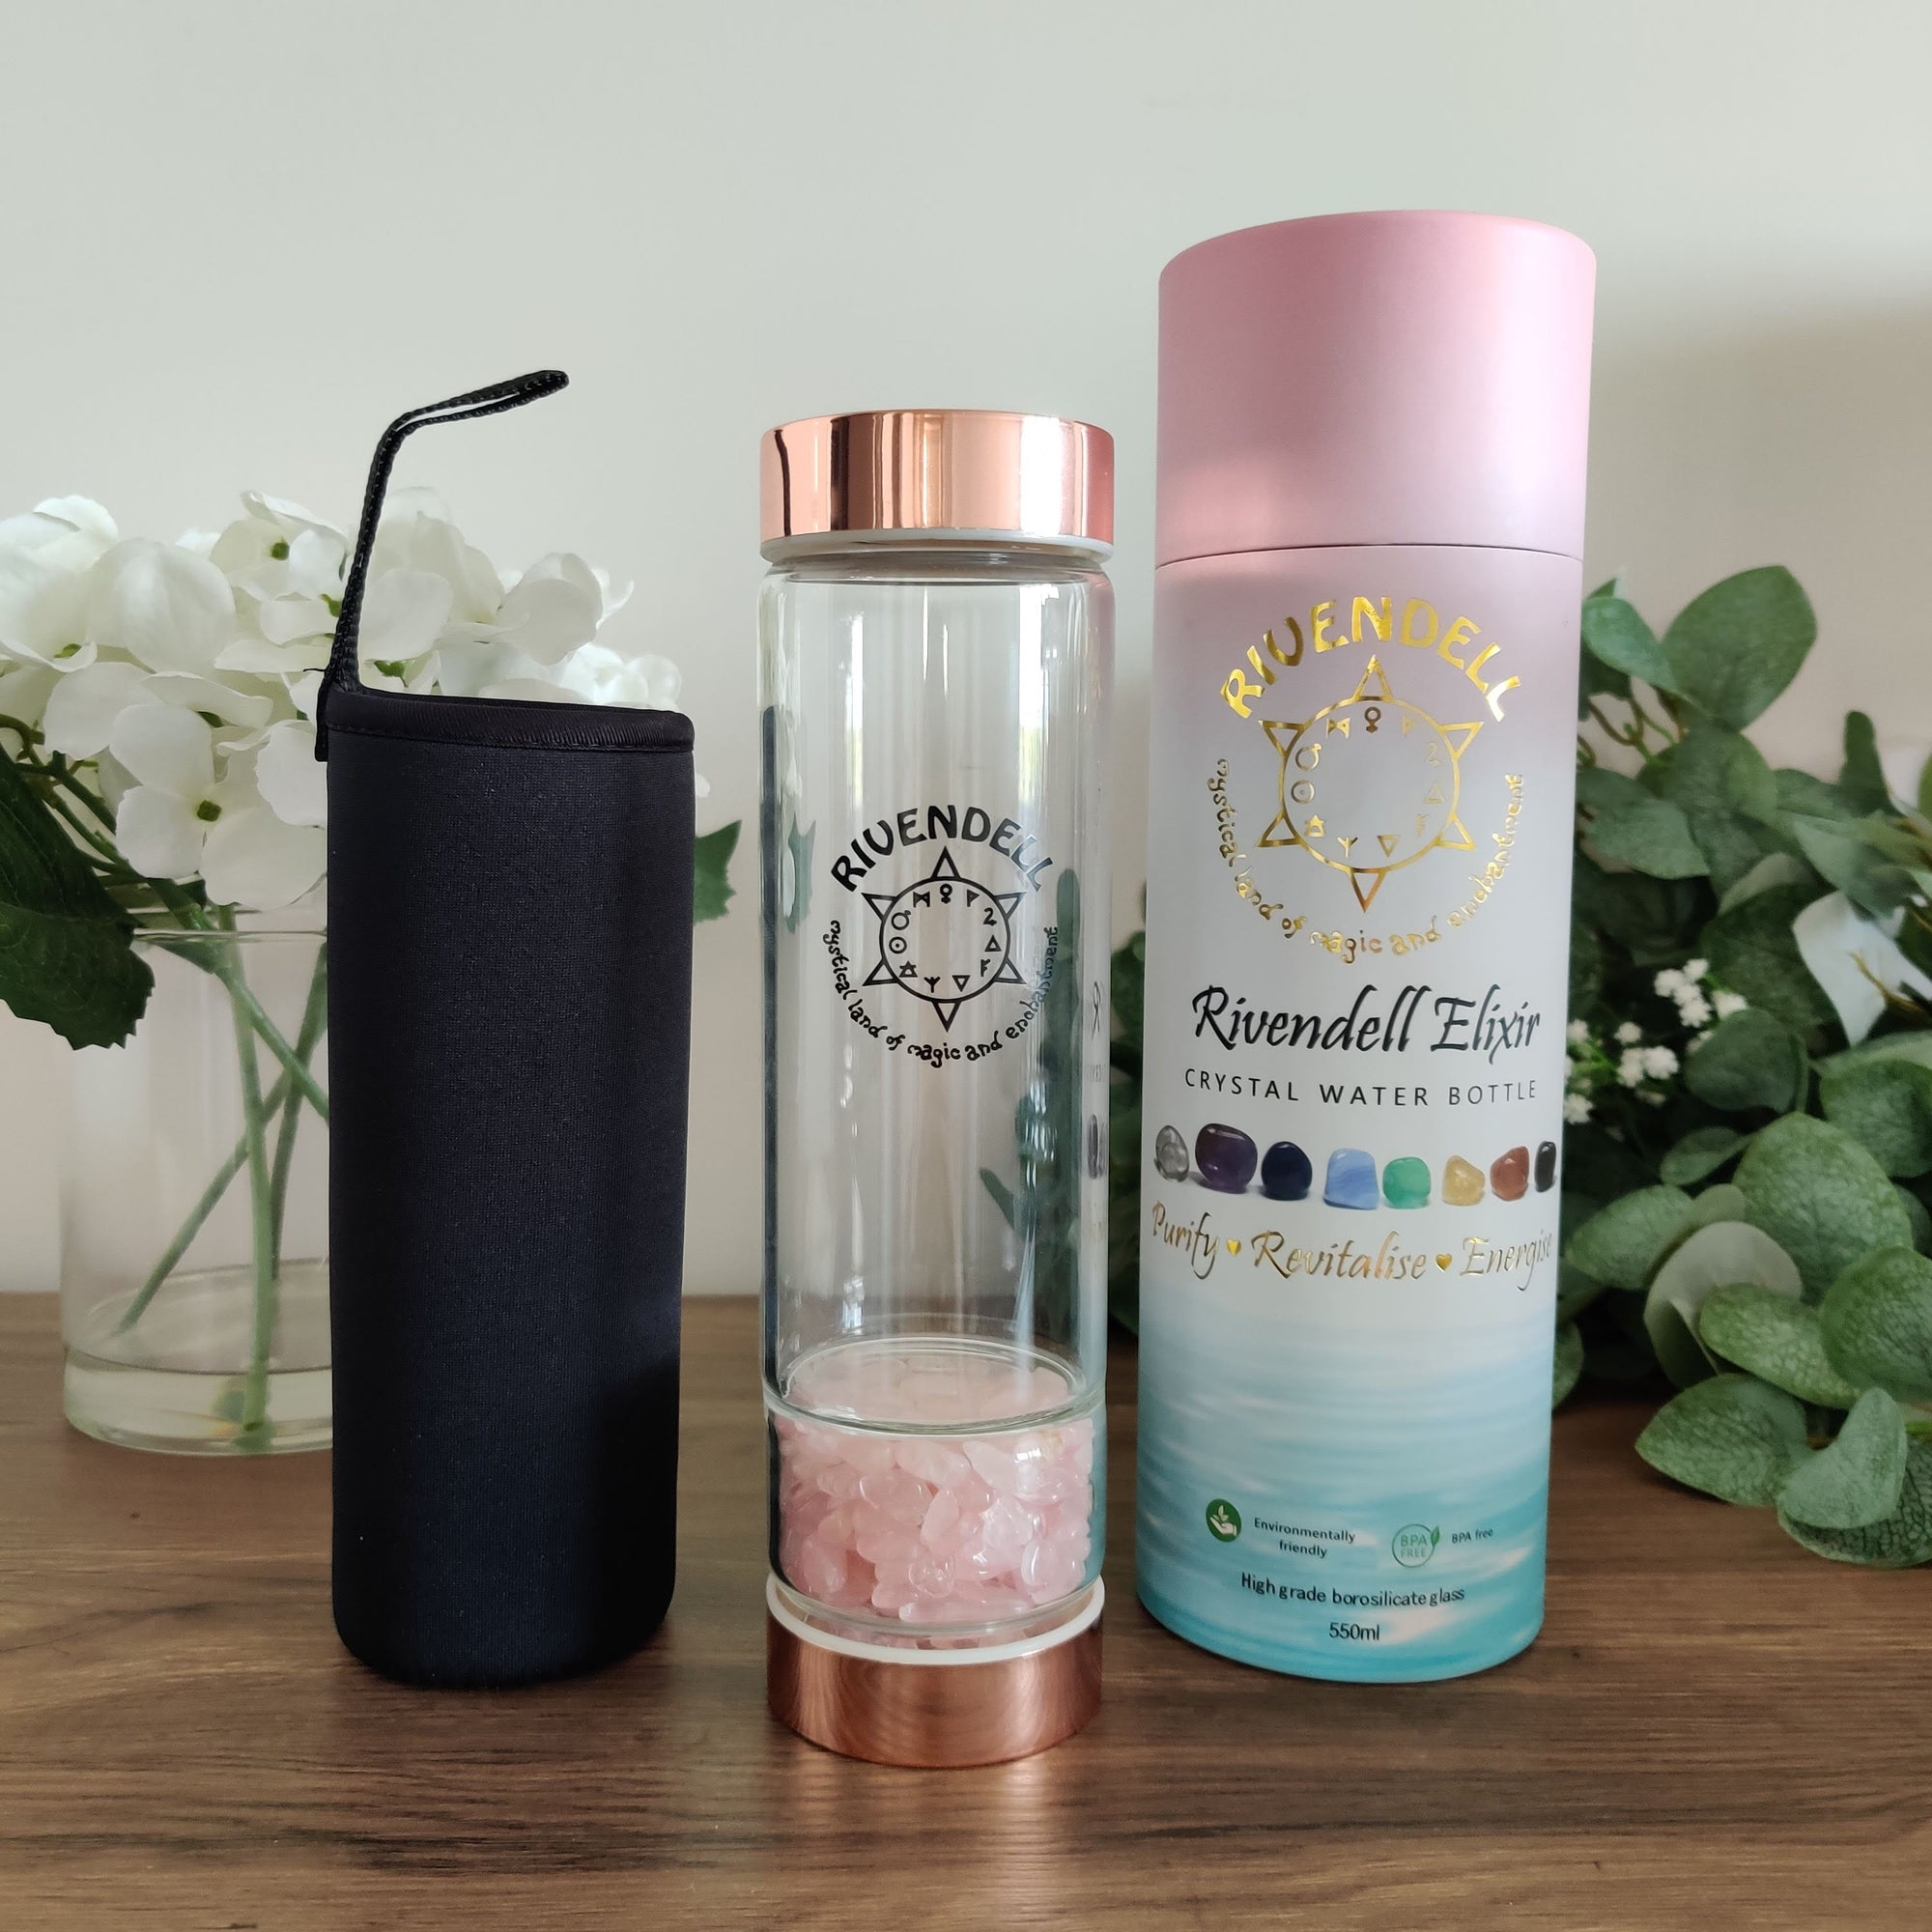 Rivendell Elixir: Rose Quartz Crystal Water Bottle - Rivendell Shop